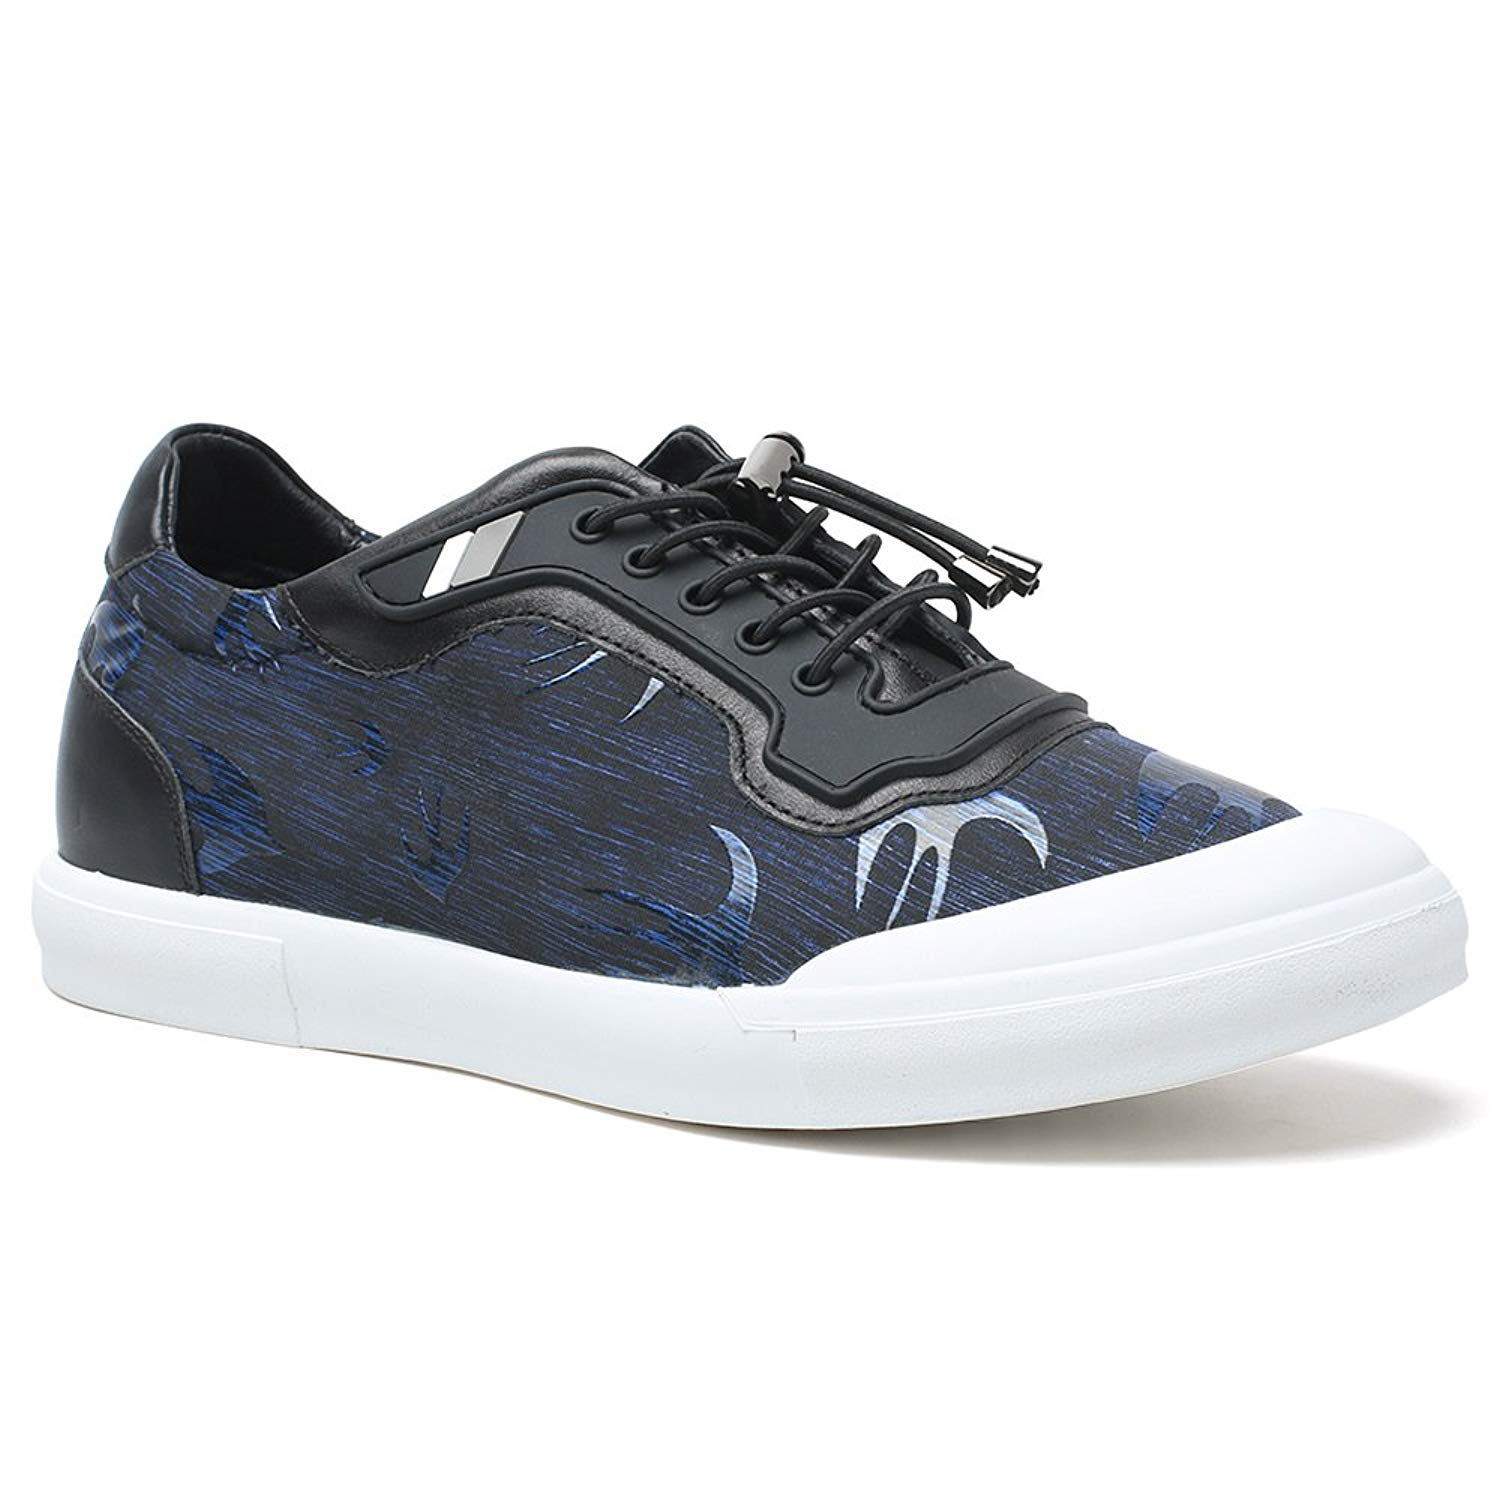 fe432a5df28611 Get Quotations · CHAMARIPA Men s Height Increasing Elevator Sneakers Shoes  2.36 inches Taller for Walking AH81C80D051D